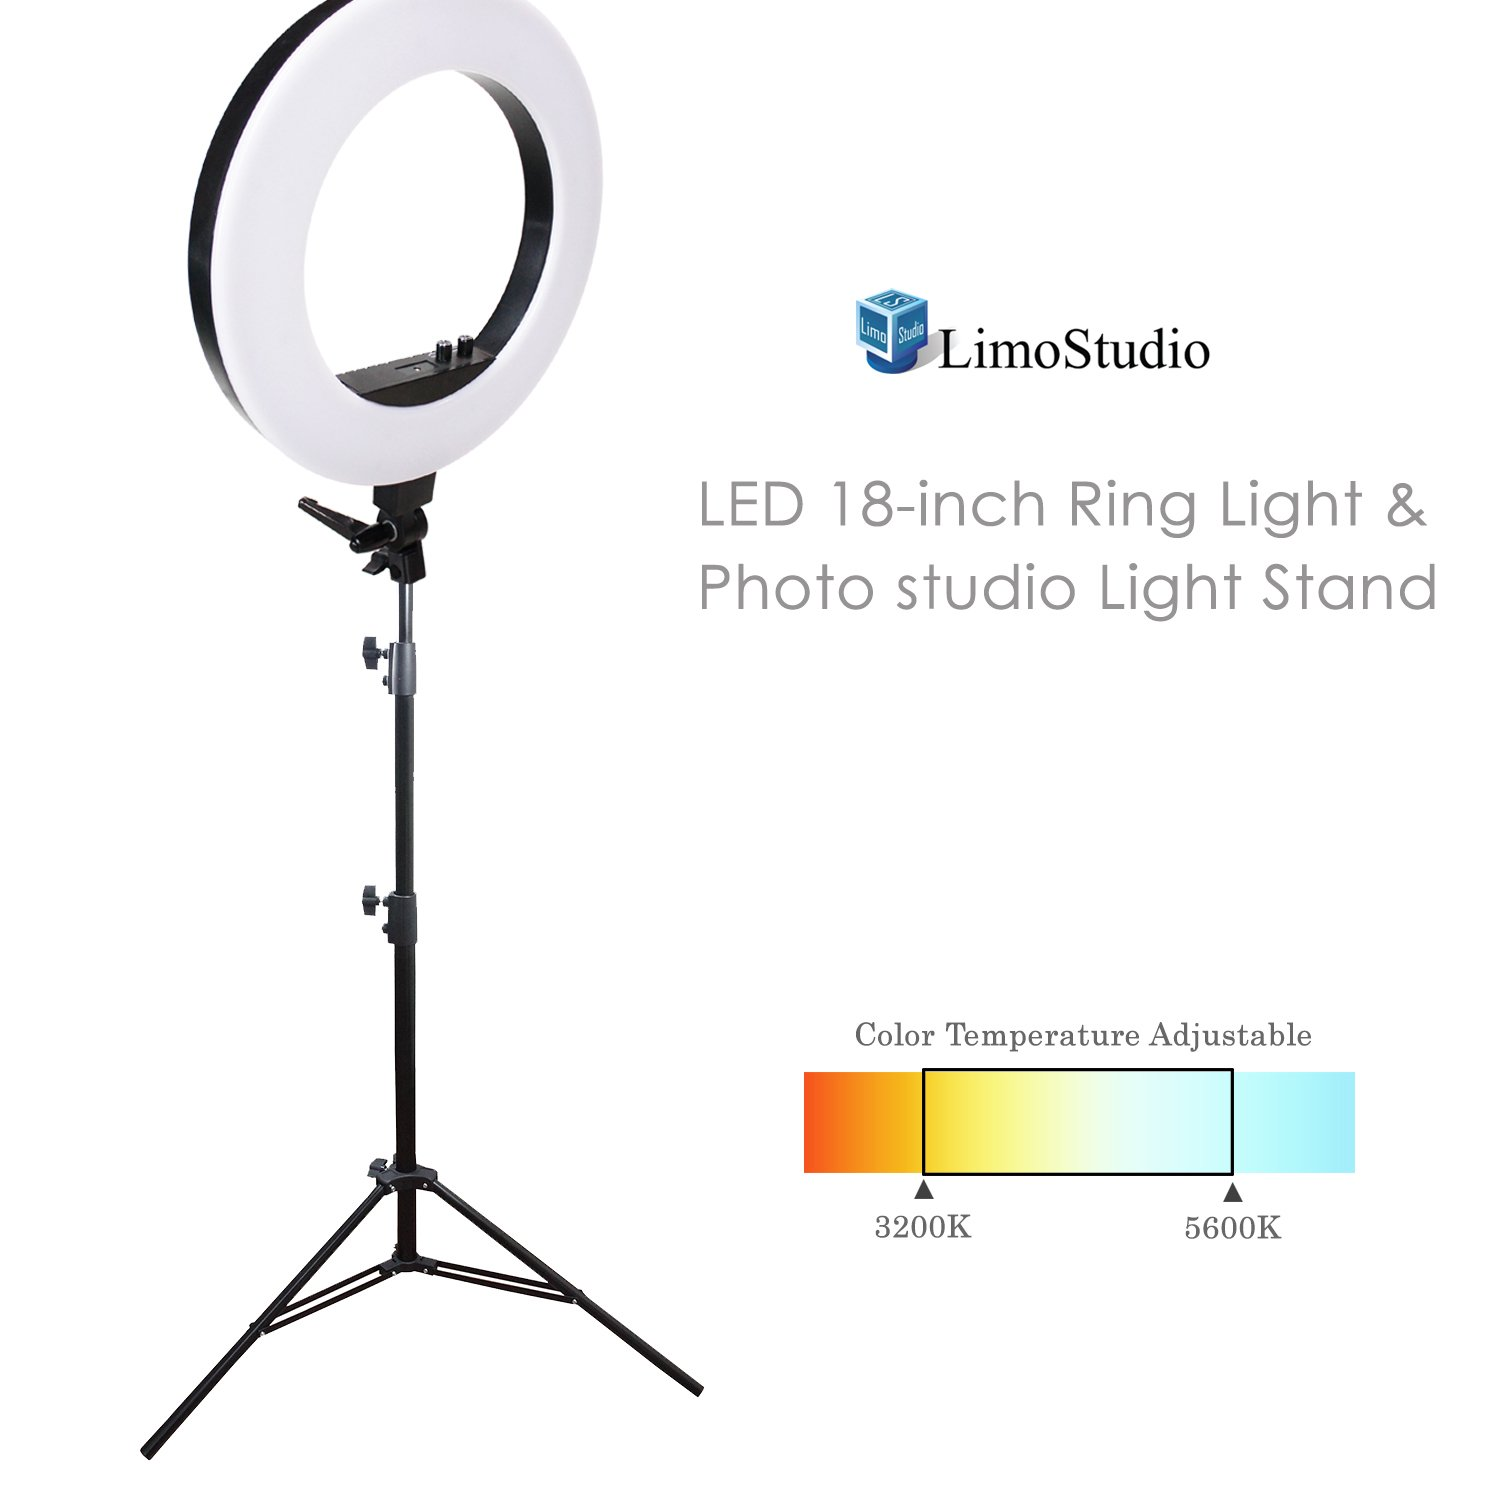 LimoStudio LED 18 inch Ring Light 3200K–5600K and Dimmable with Camera Adapter & Height Adjustable Photo Studio Light Stand Tirpod, AGG2397